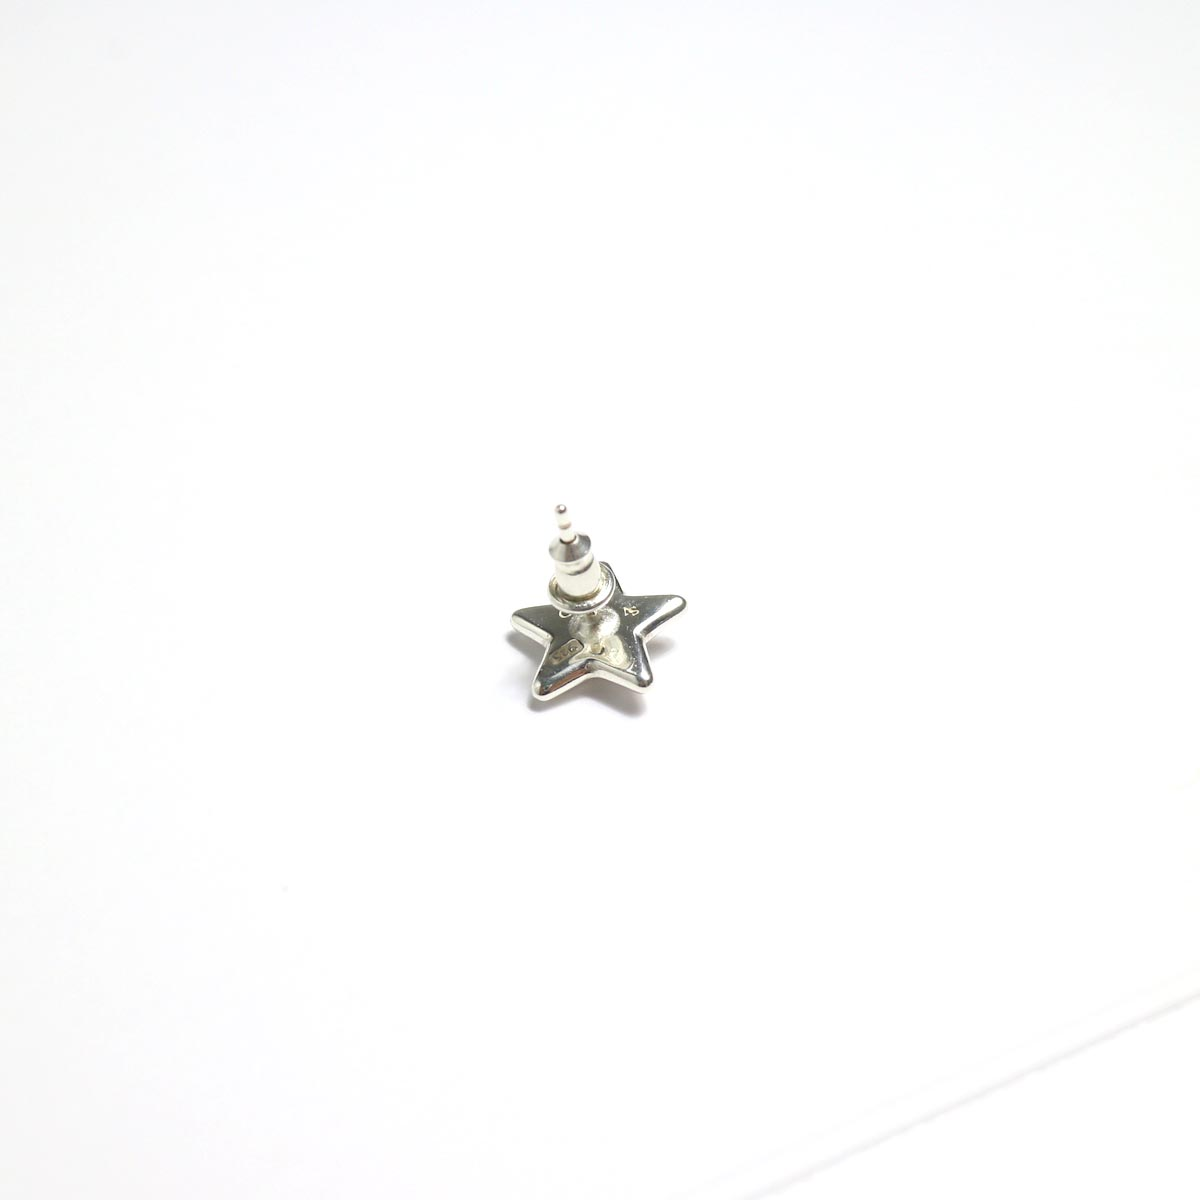 END / Rim Star Pierce キャッチ